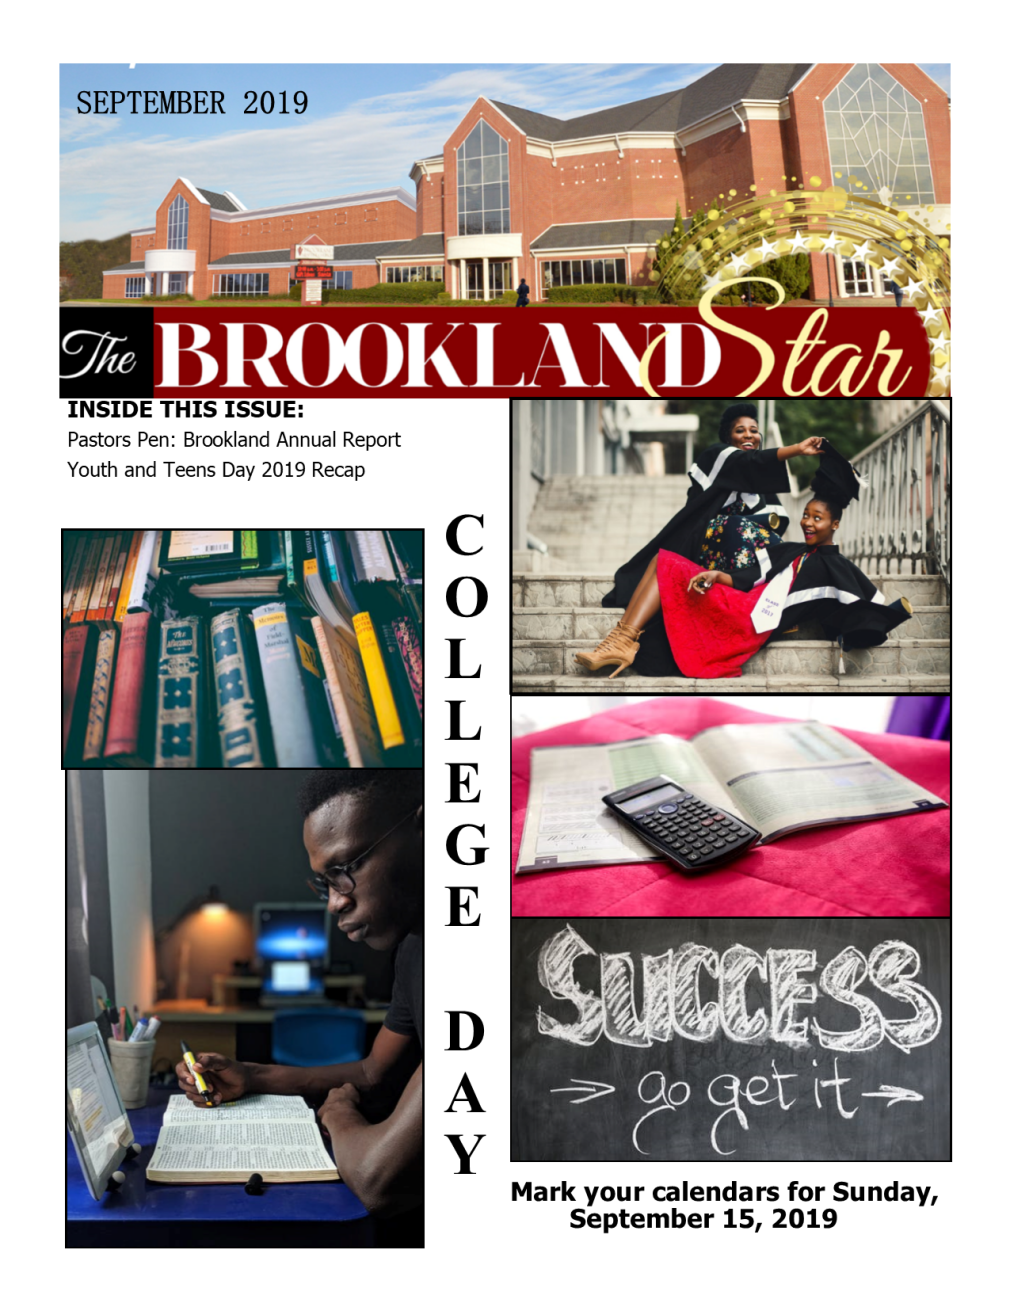 The Brookland Star September 2019 Edition